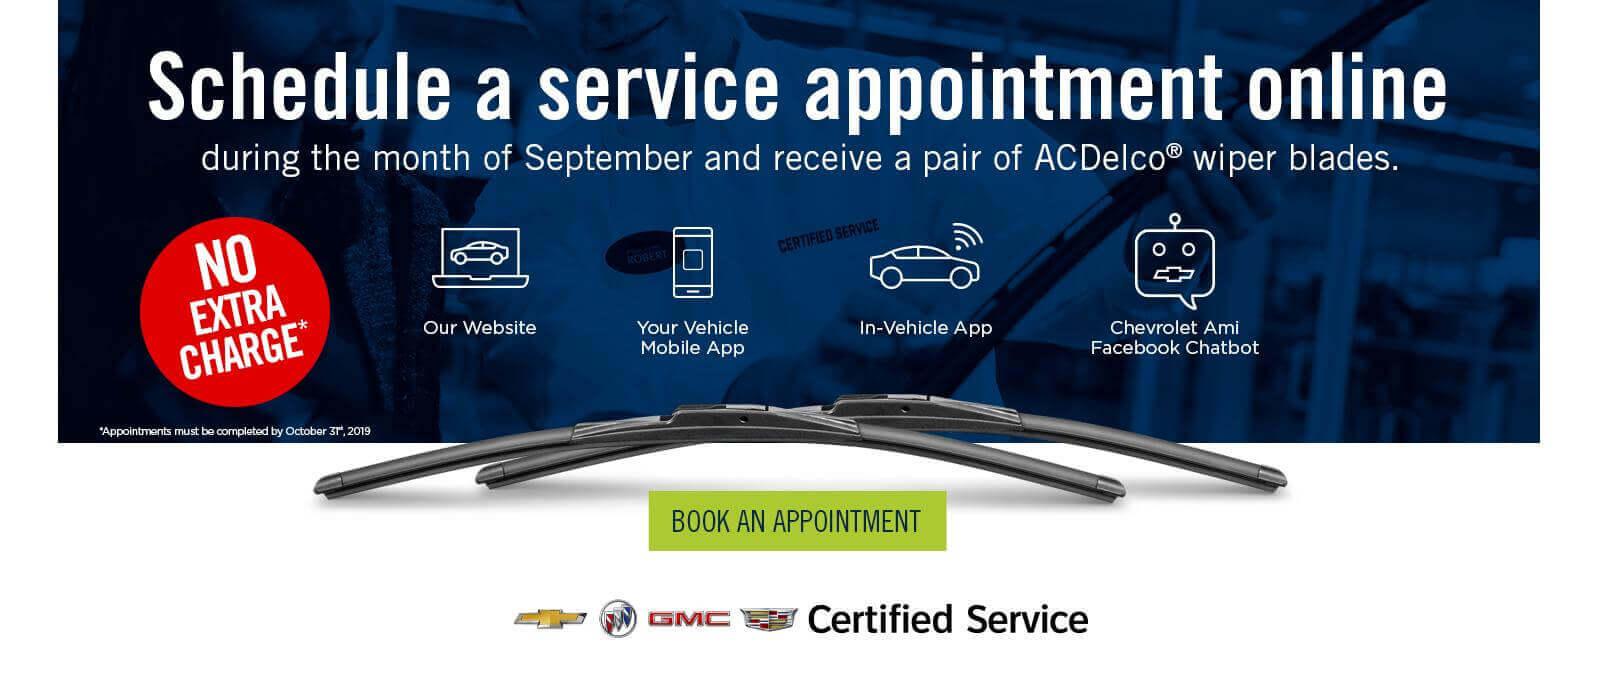 Schedule a service appointment online